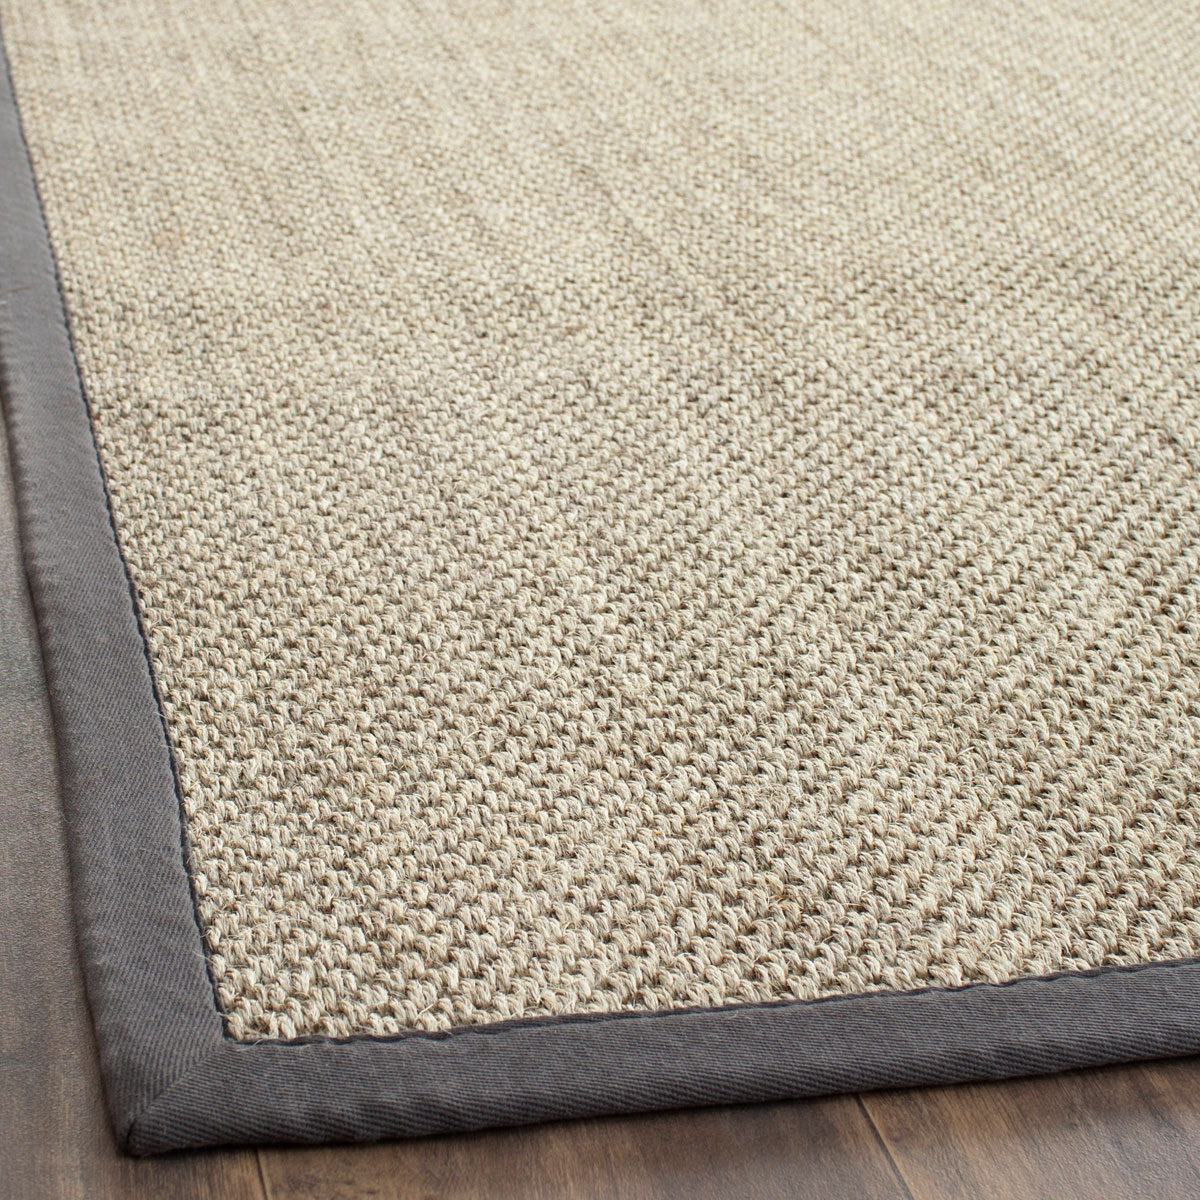 Rug Nf443b Natural Fiber Area Rugs By Safavieh